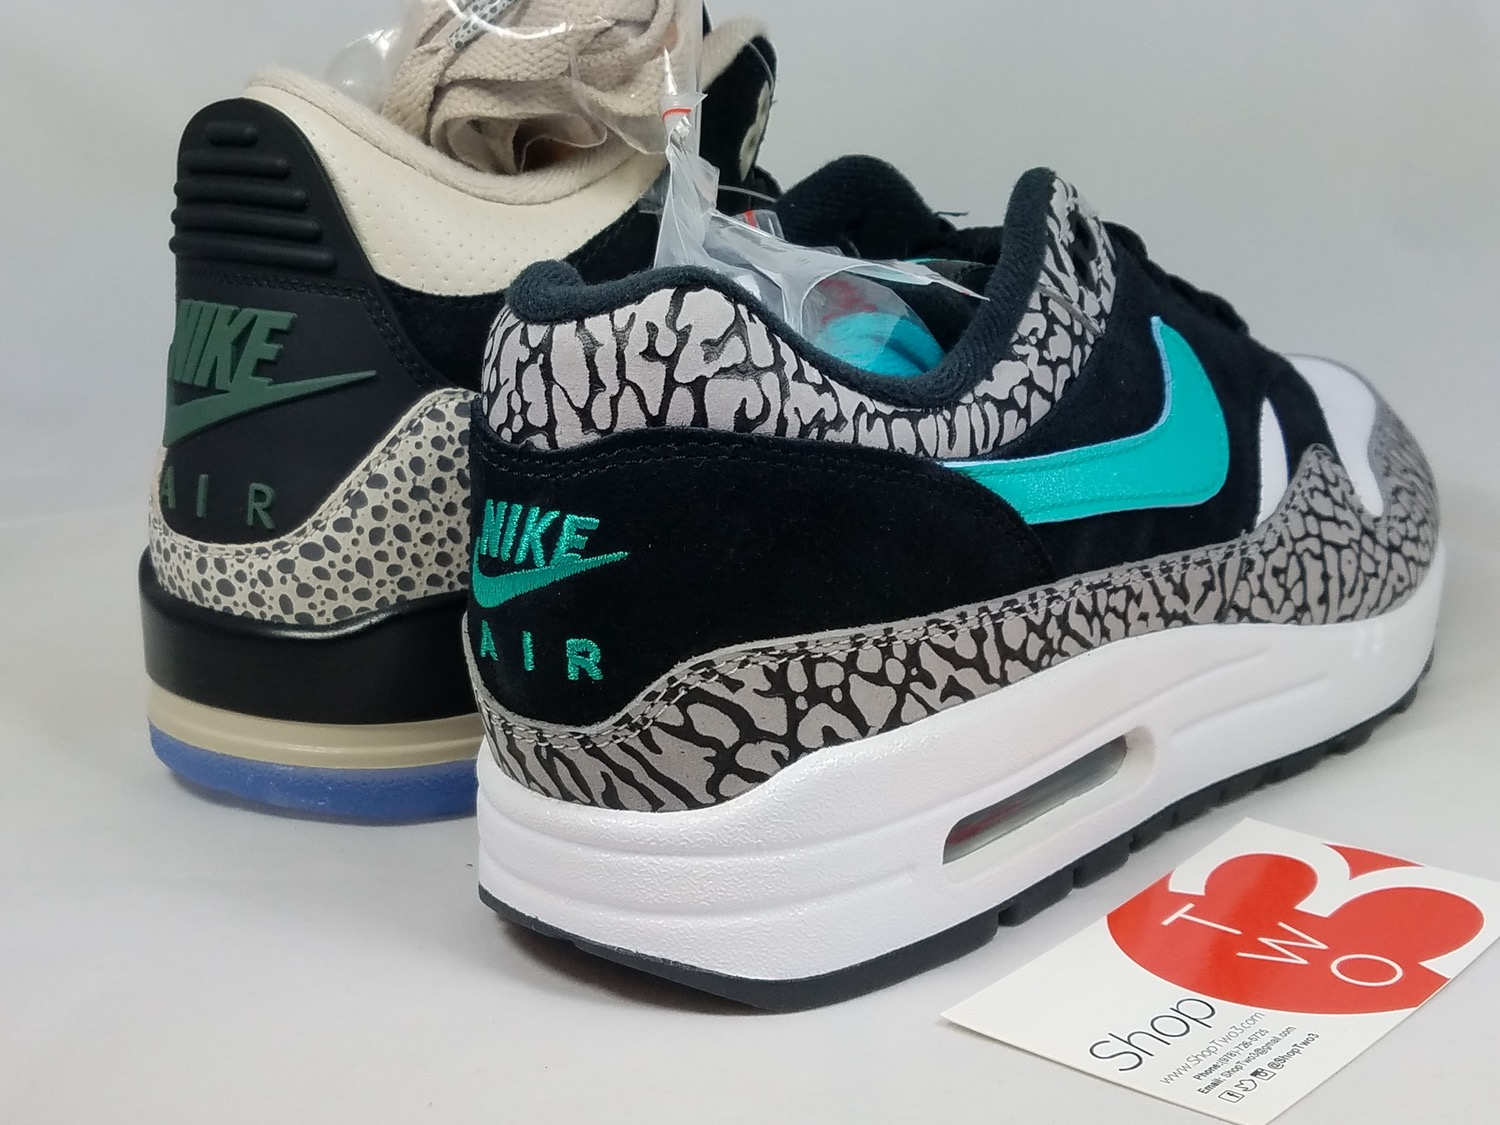 best service d1eb9 d7f5c In case you couldn t get enough atmos x Air Jordan 3, here are some of the  latest images to check. As mentioned, this is the very first AJ3 to feature  ...